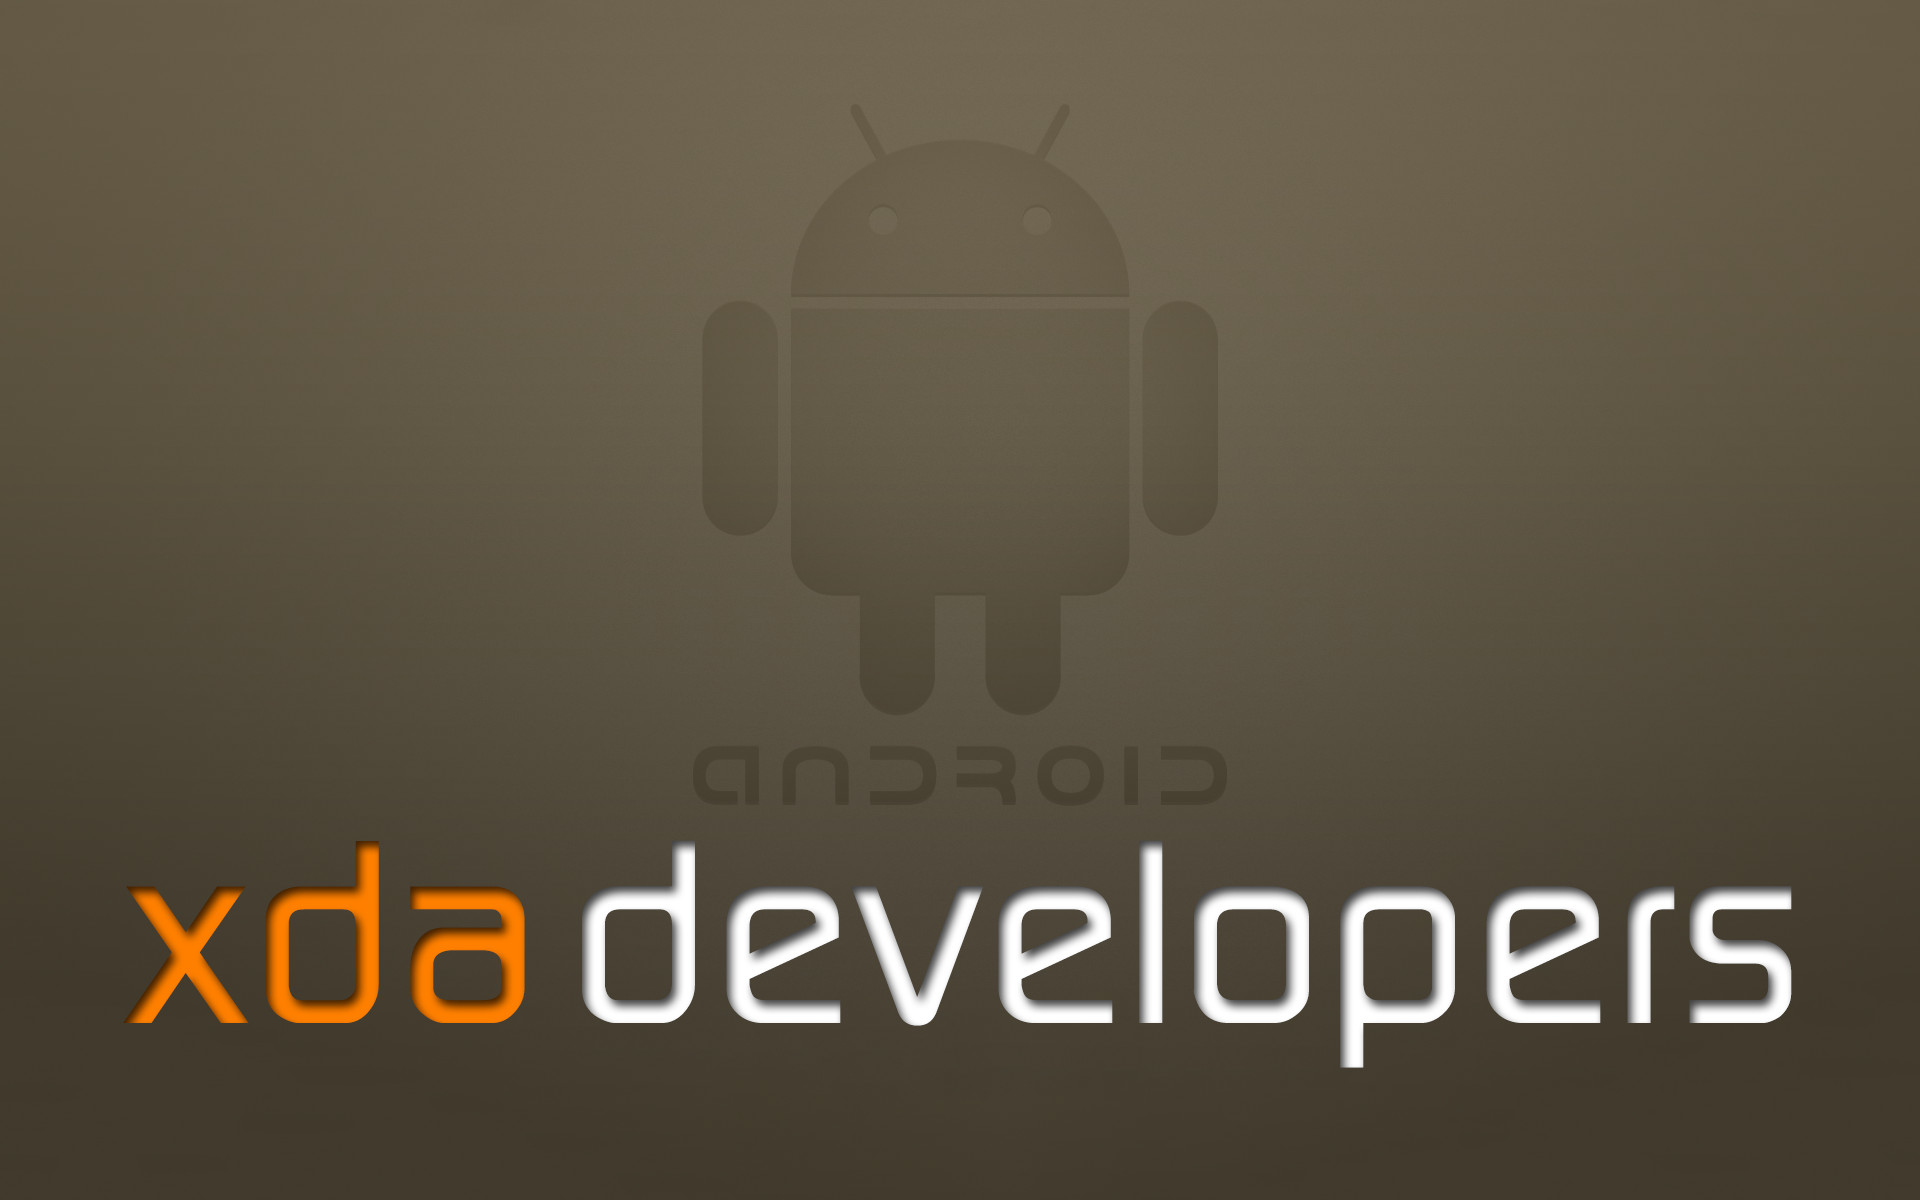 xda developers full hd wallpaper by divaksh customization wallpaper 1920x1200